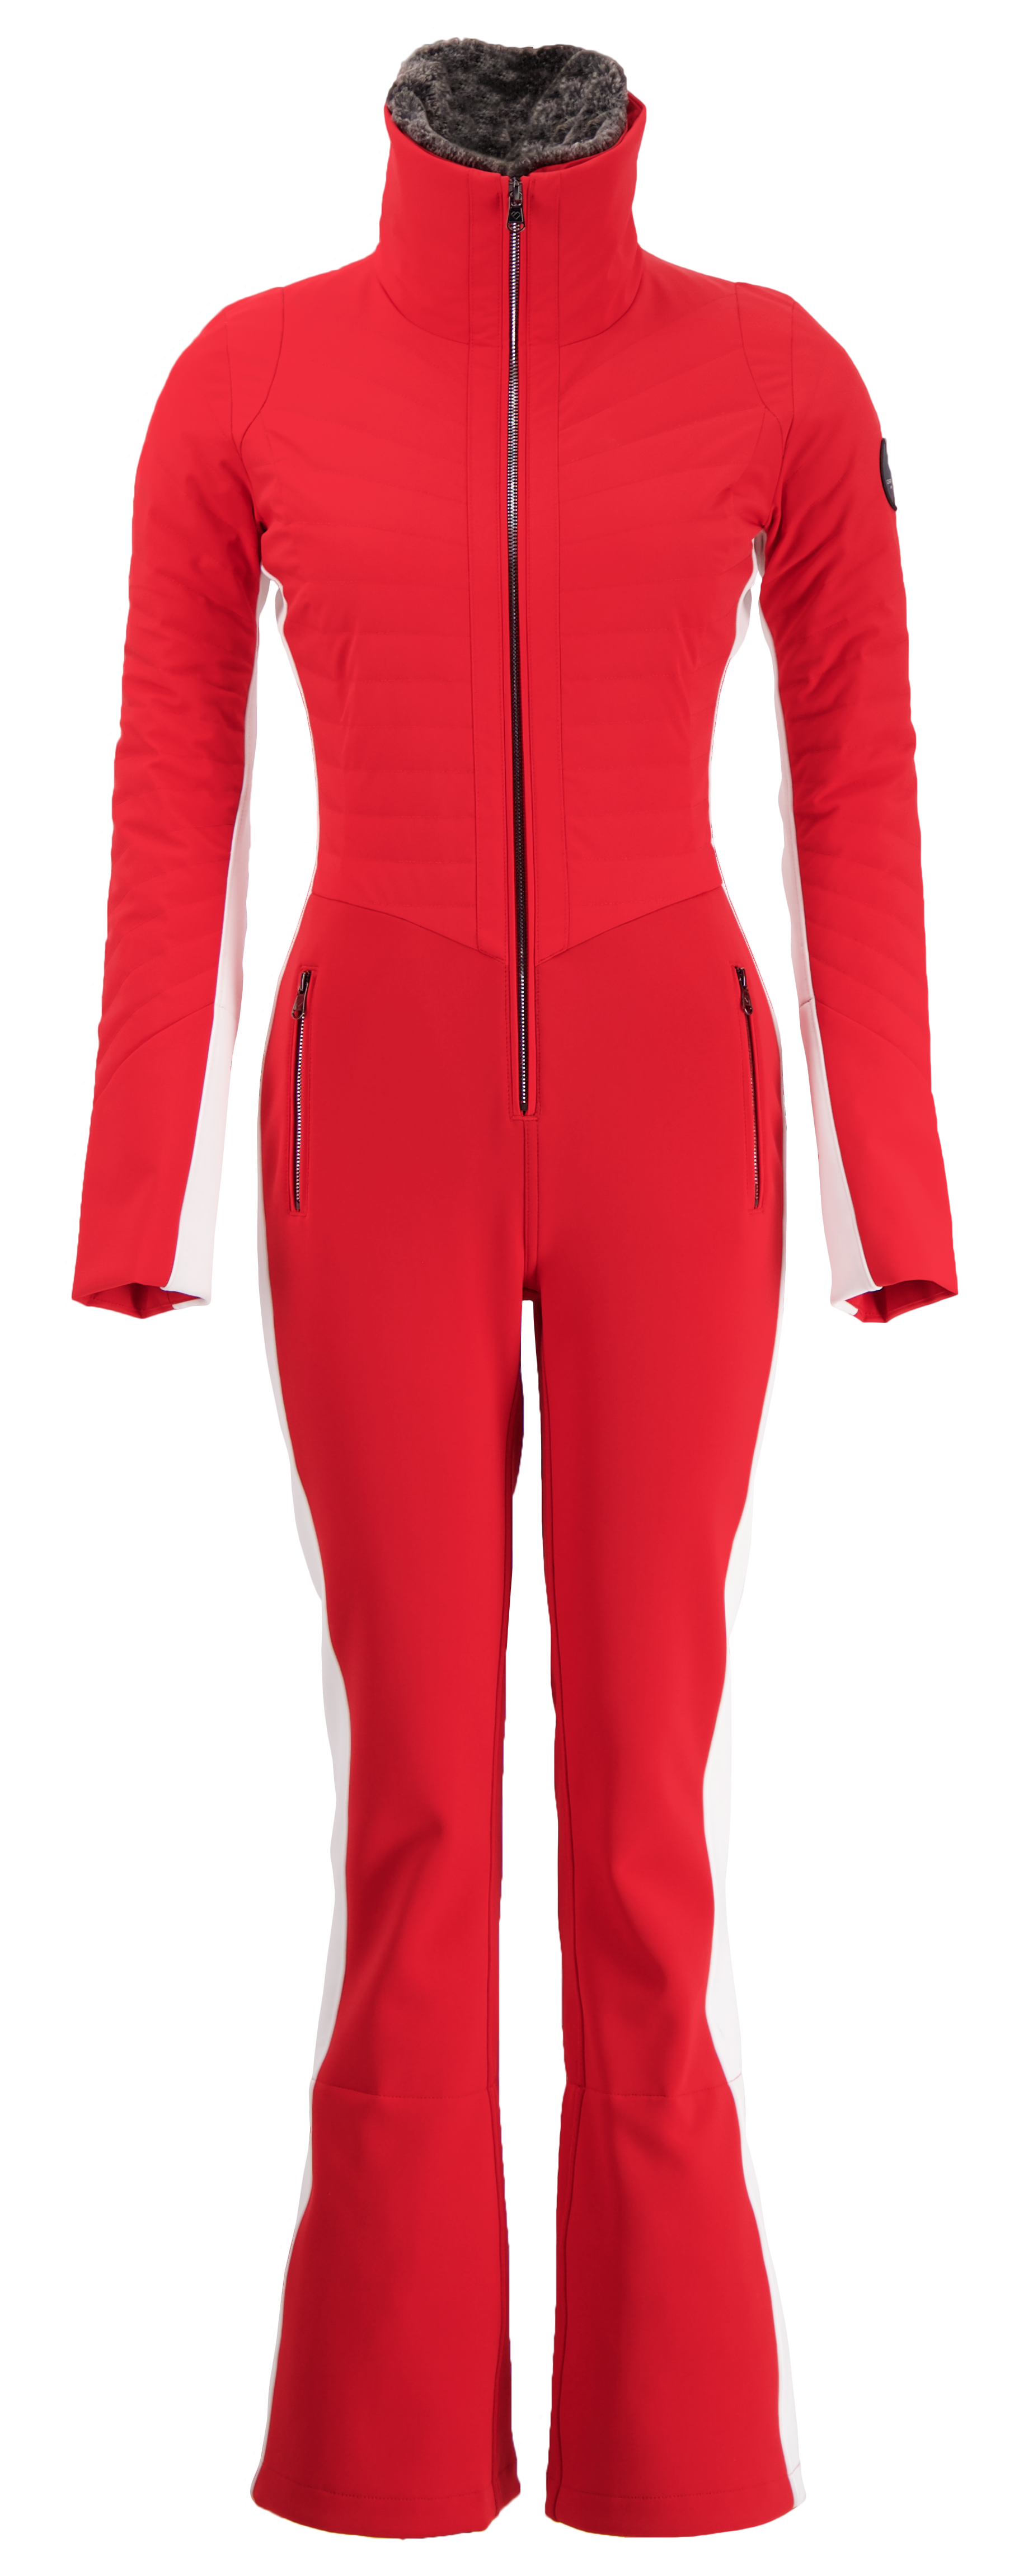 Sportful Windstopper Tech